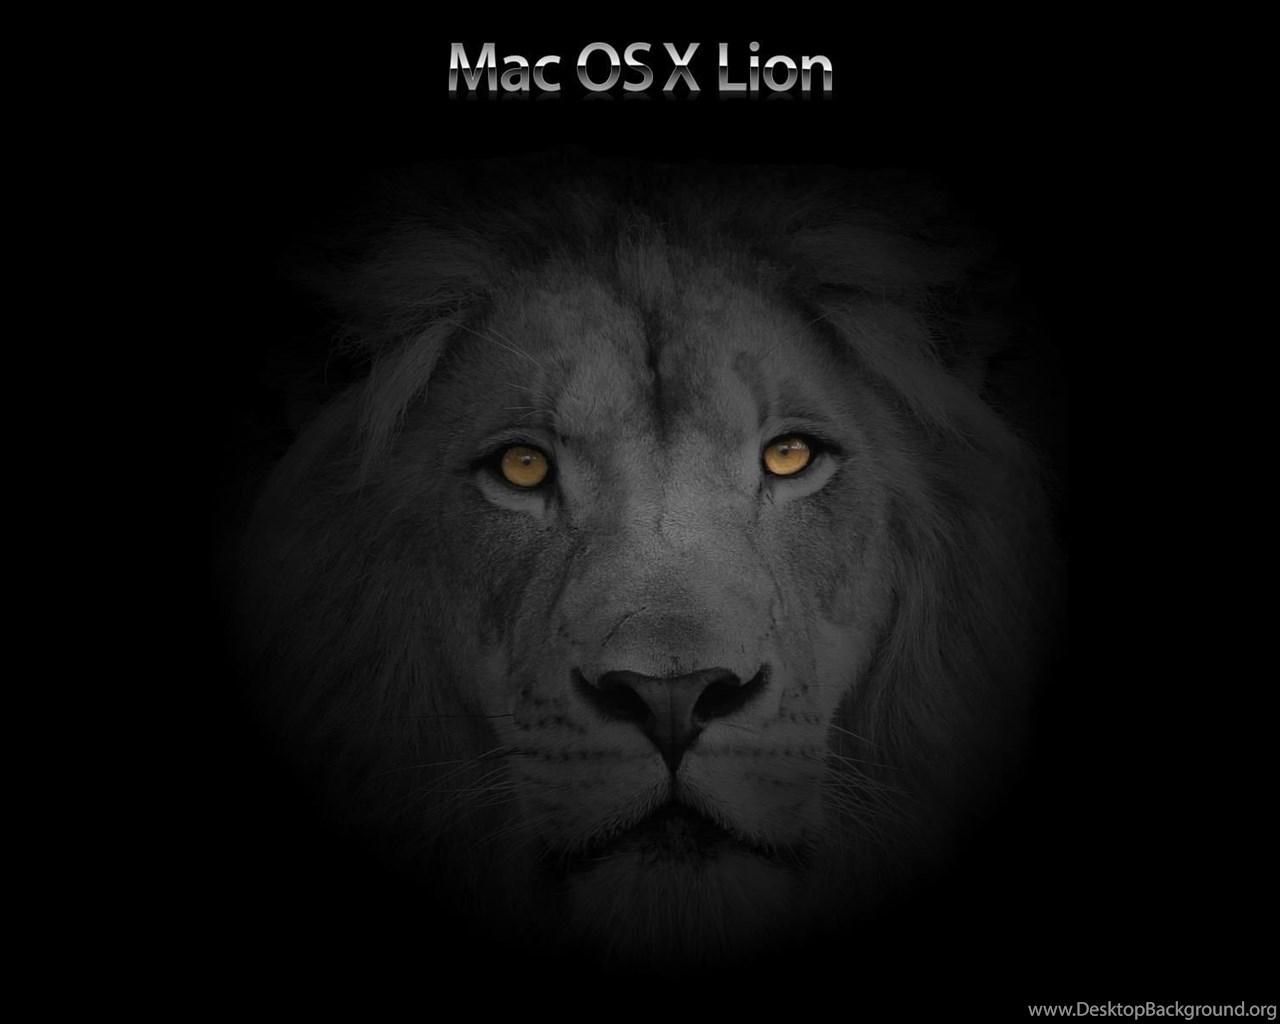 mac os x lion, black, steampunk, 1920x1200 hd wallpapers and free